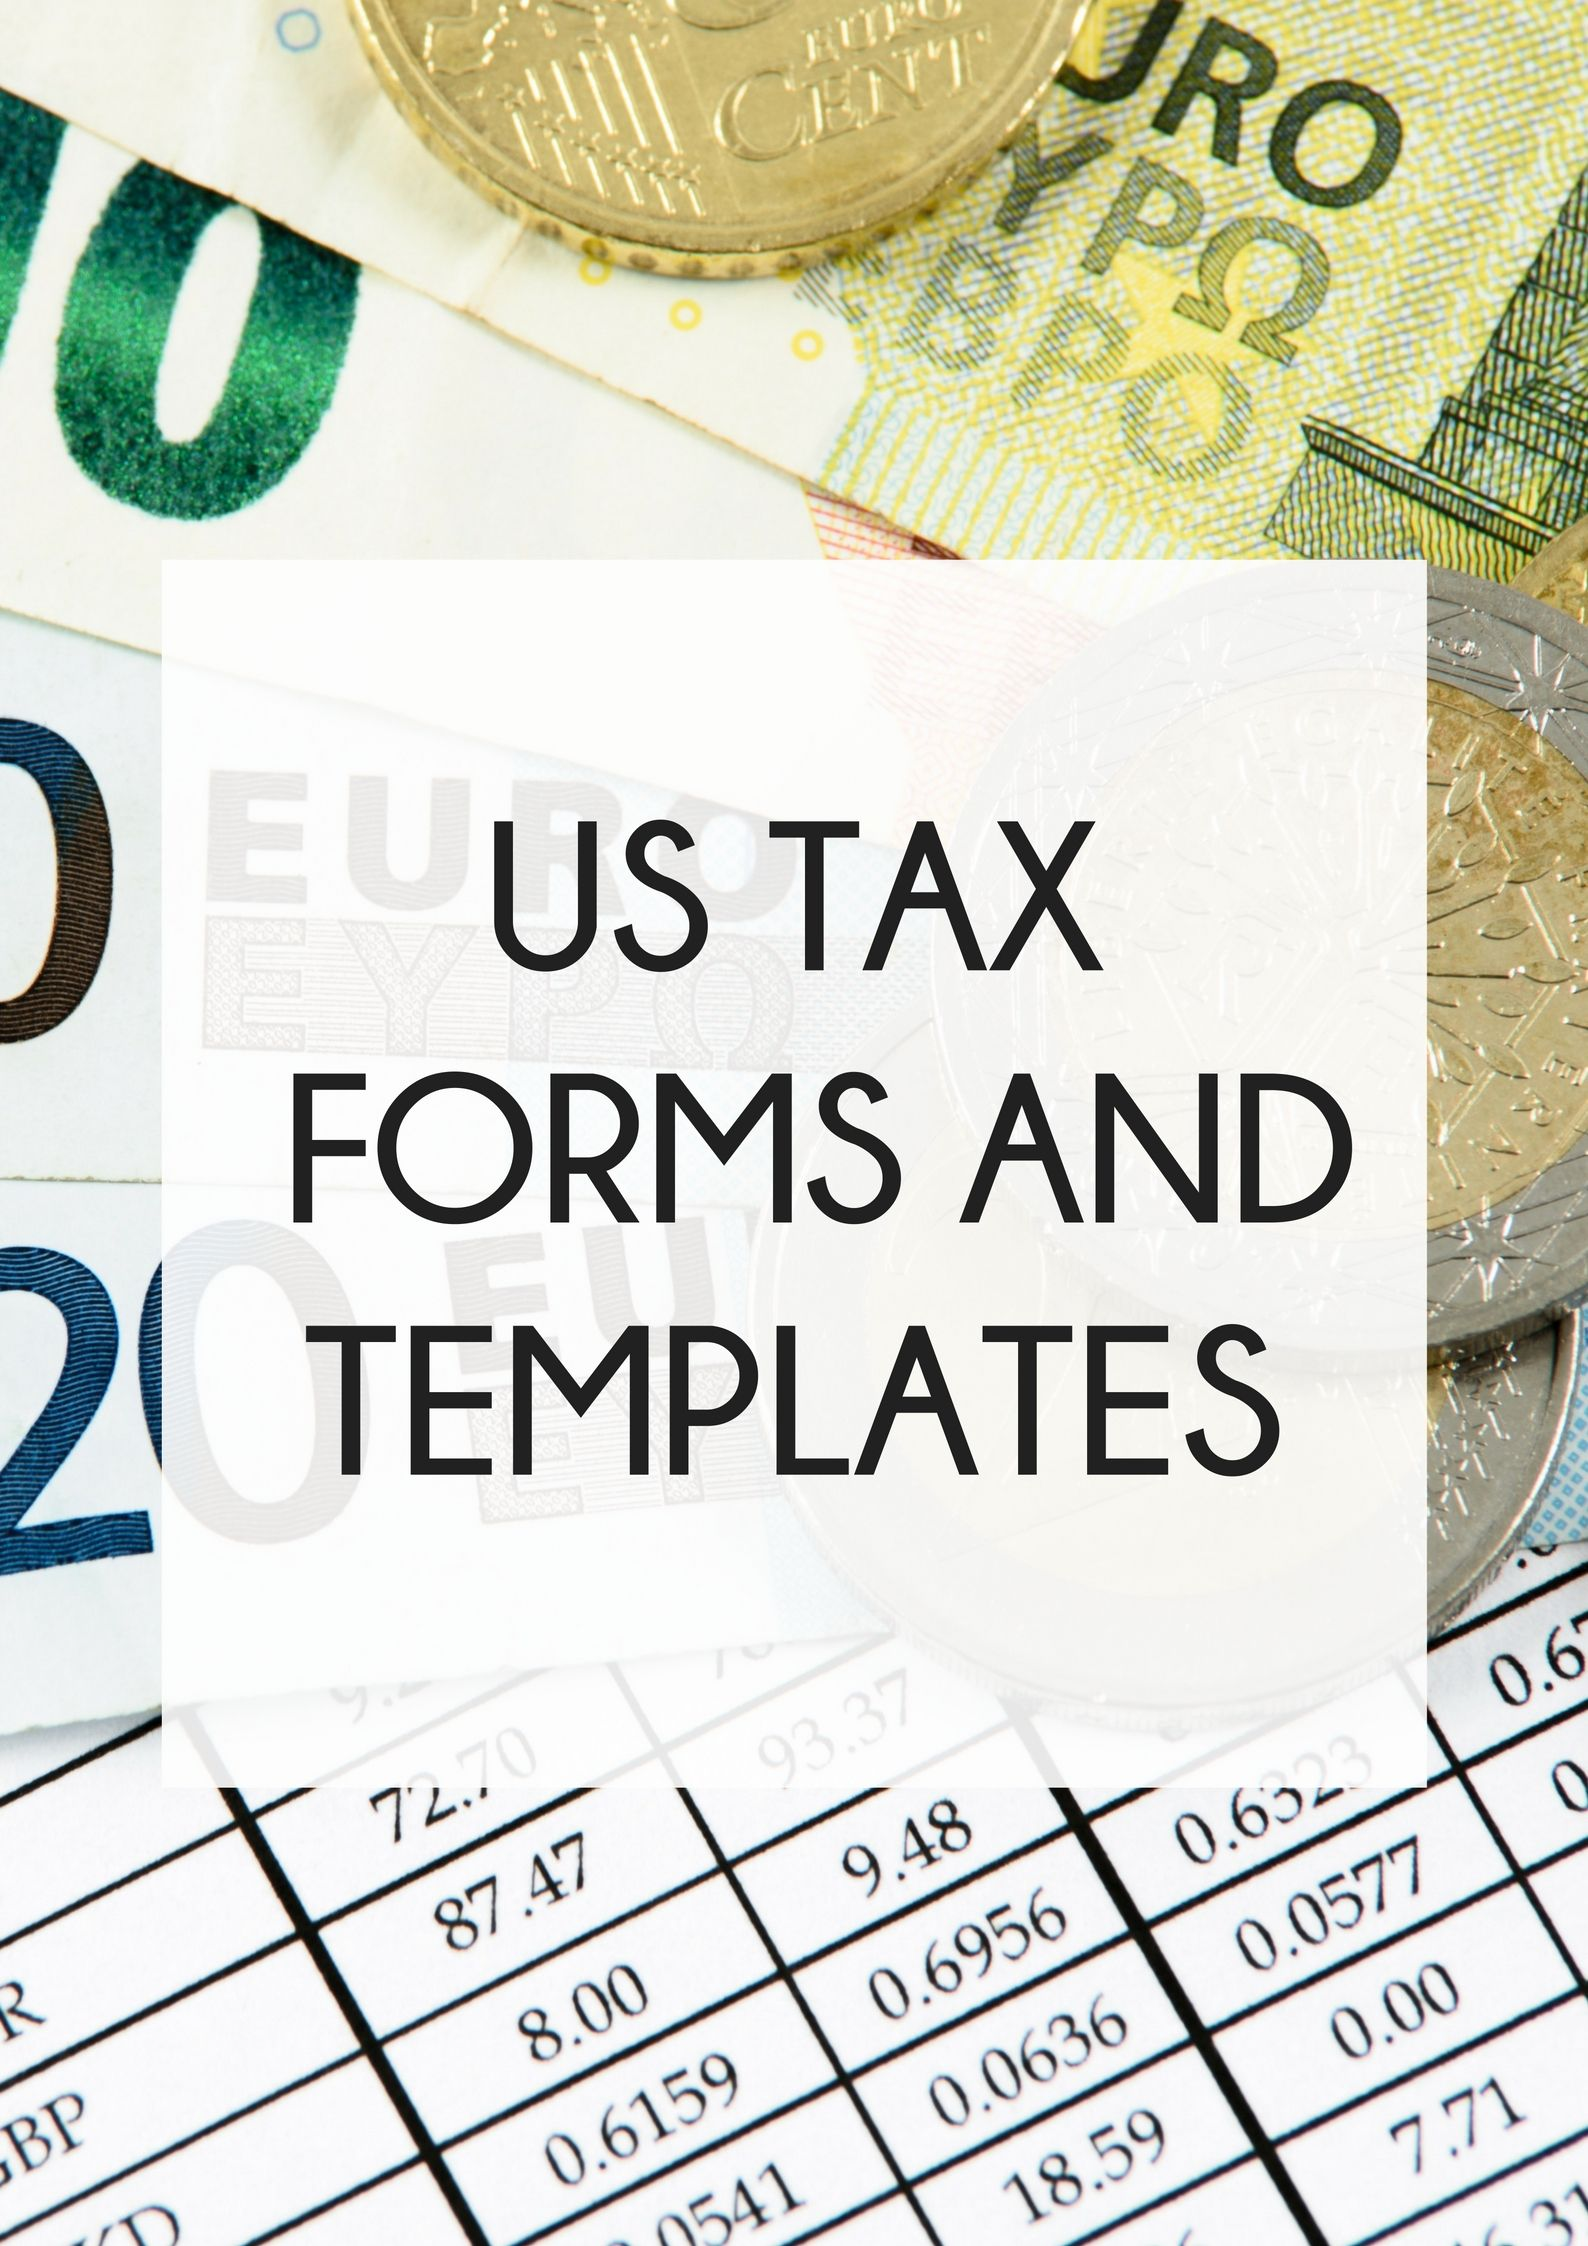 Pin by Formsbank on Magizines in 2020 Tax forms